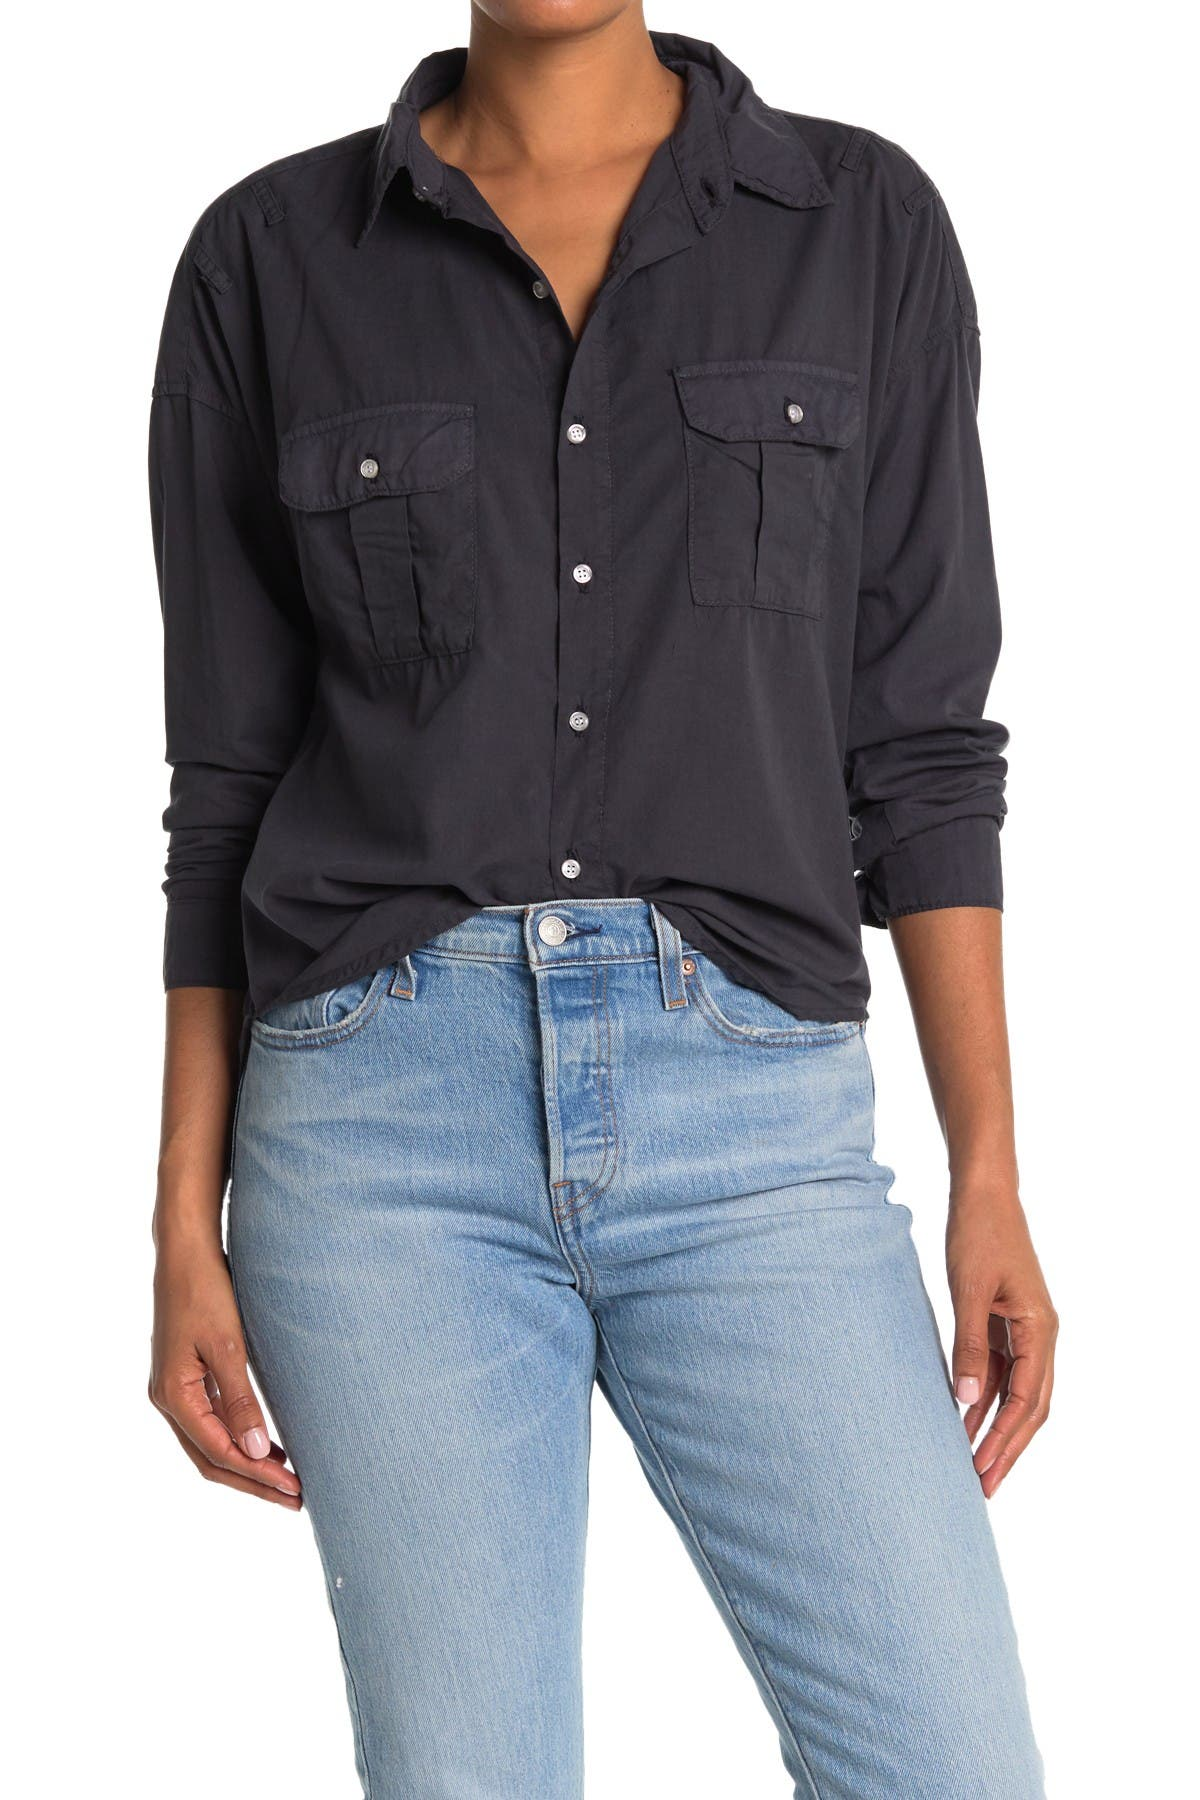 Image of NSF CLOTHING Johnna Long Sleeve Pocket Button Up